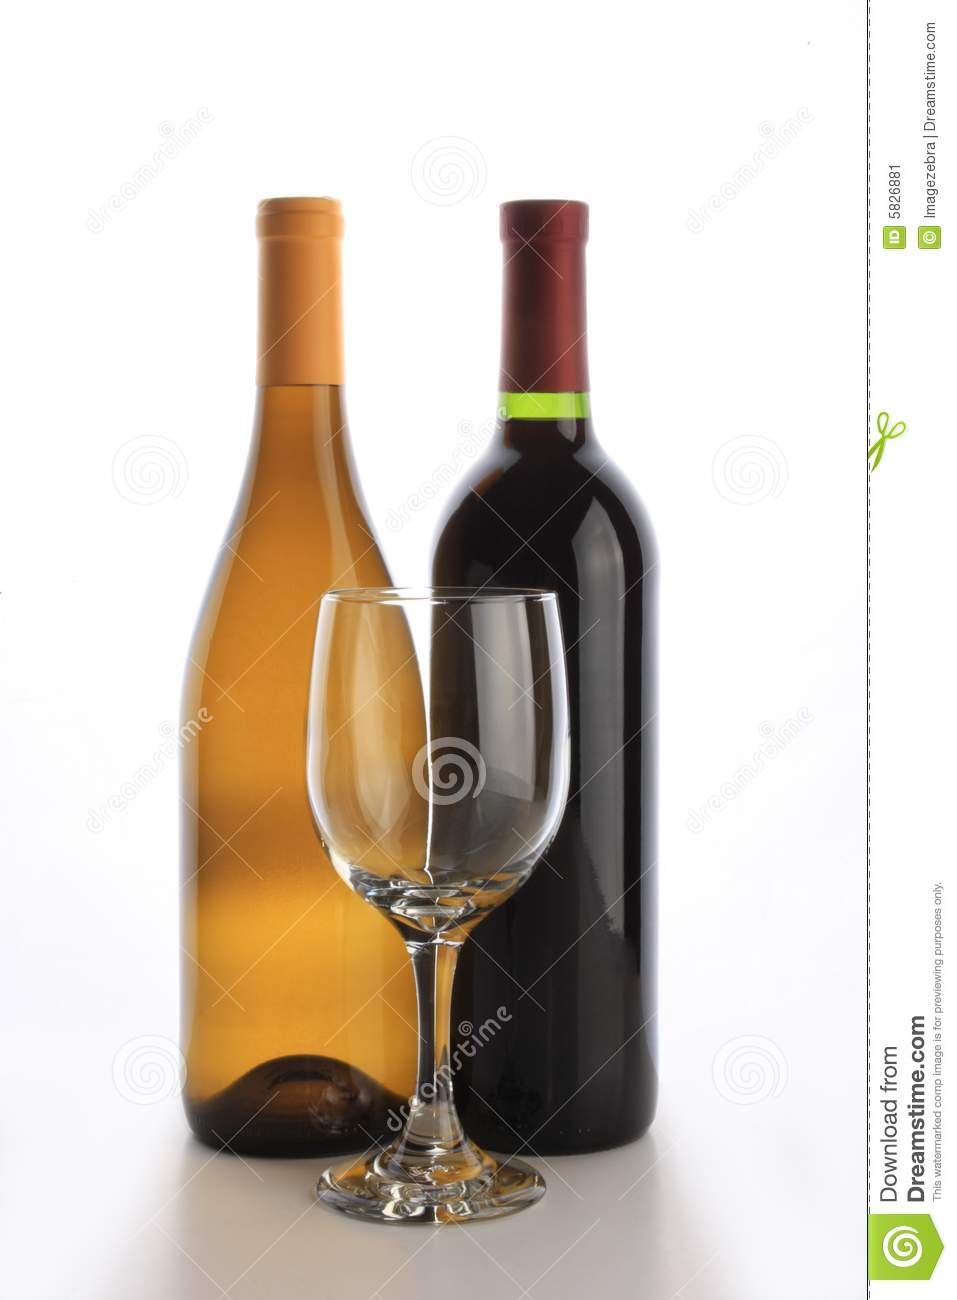 Two wine bottles stock image image 5826881 for Fun things to do with wine bottles